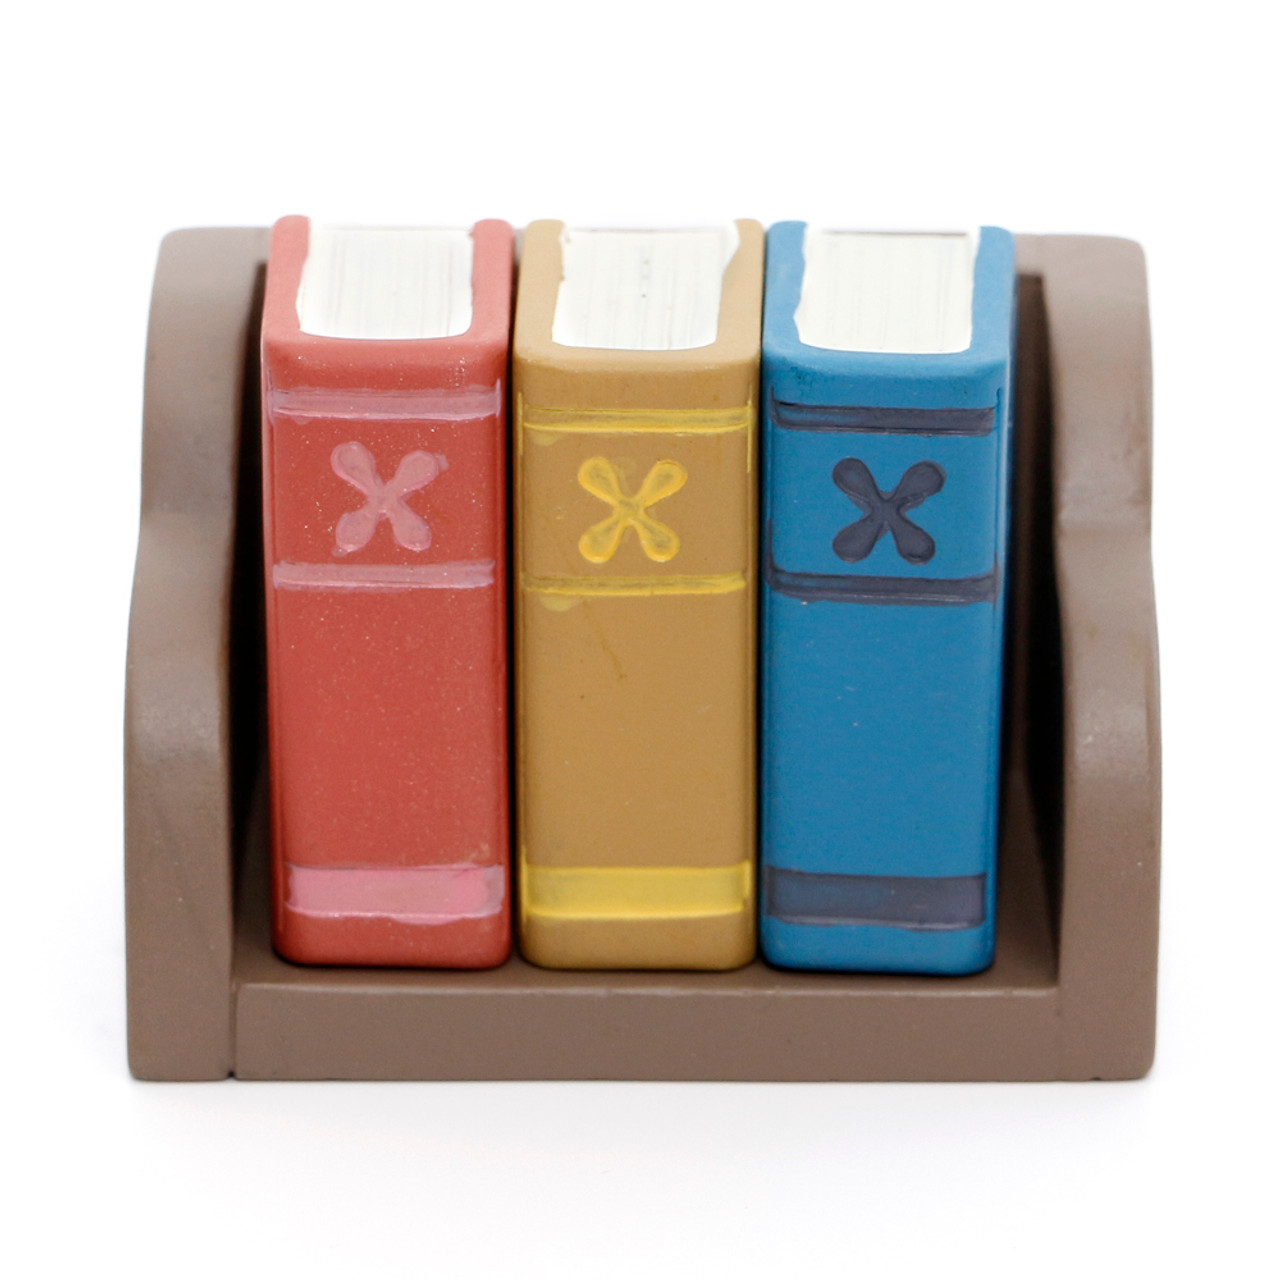 Decole Brand Kawaii 3 in 1 Style Decorative Polyresin Stamps - Bookshelf ( Front View )